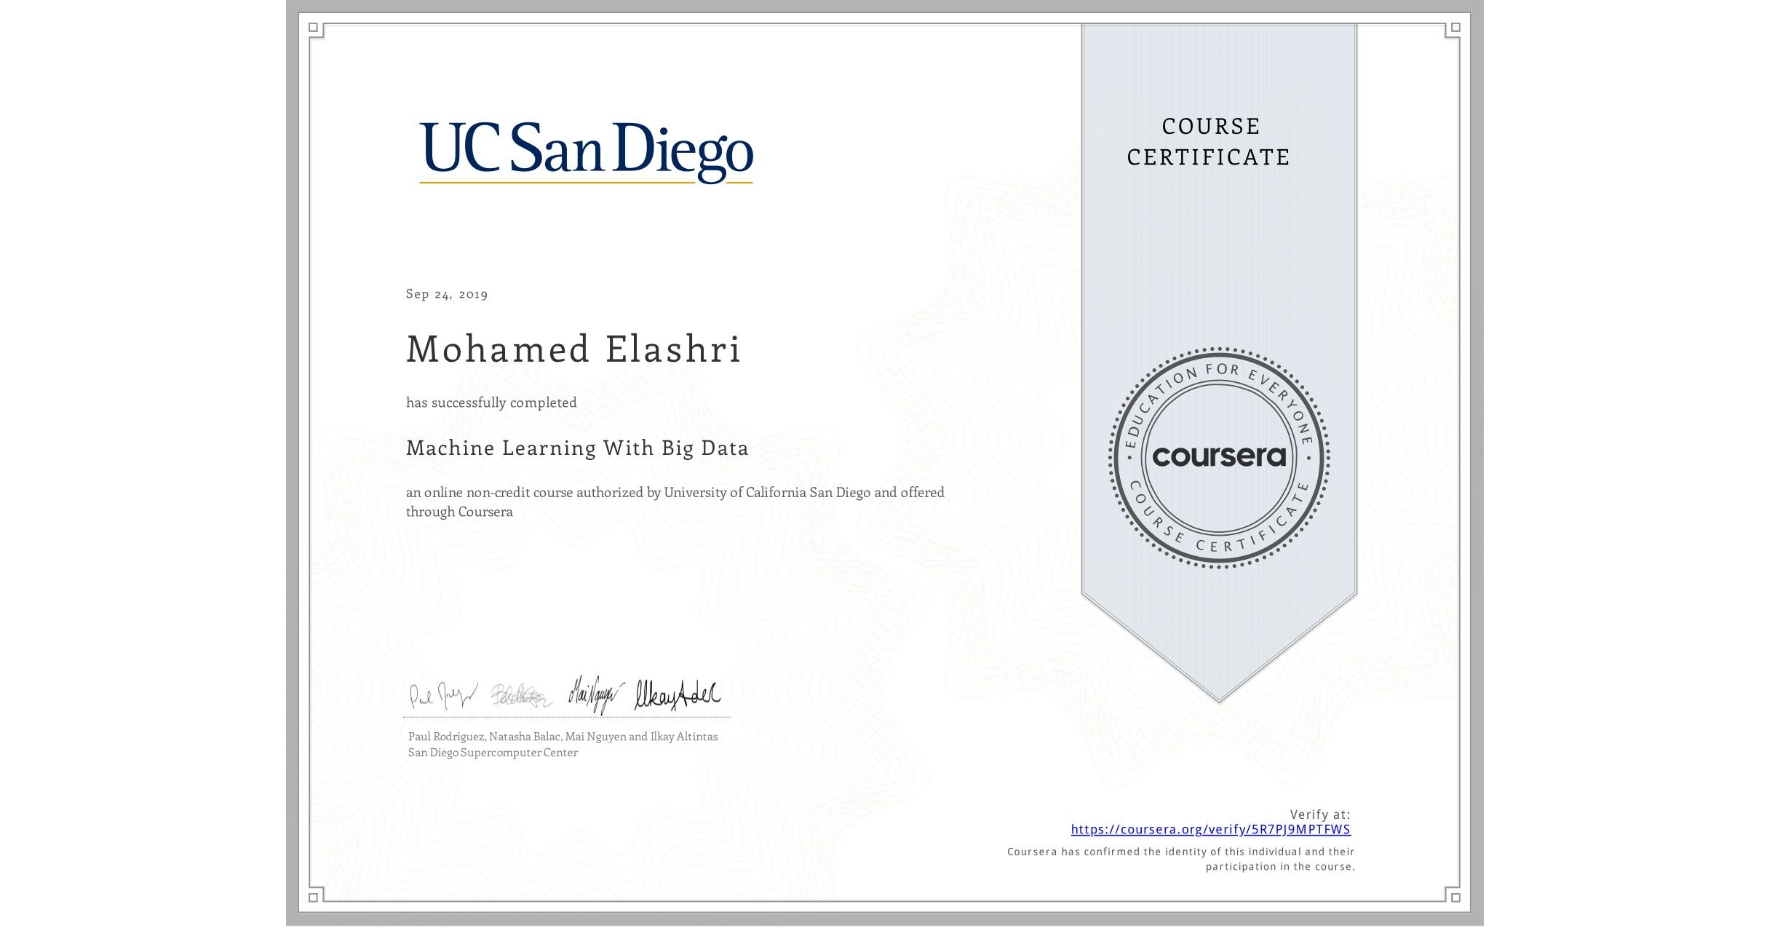 View certificate for Mohamed Elashri, Machine Learning With Big Data, an online non-credit course authorized by University of California San Diego and offered through Coursera